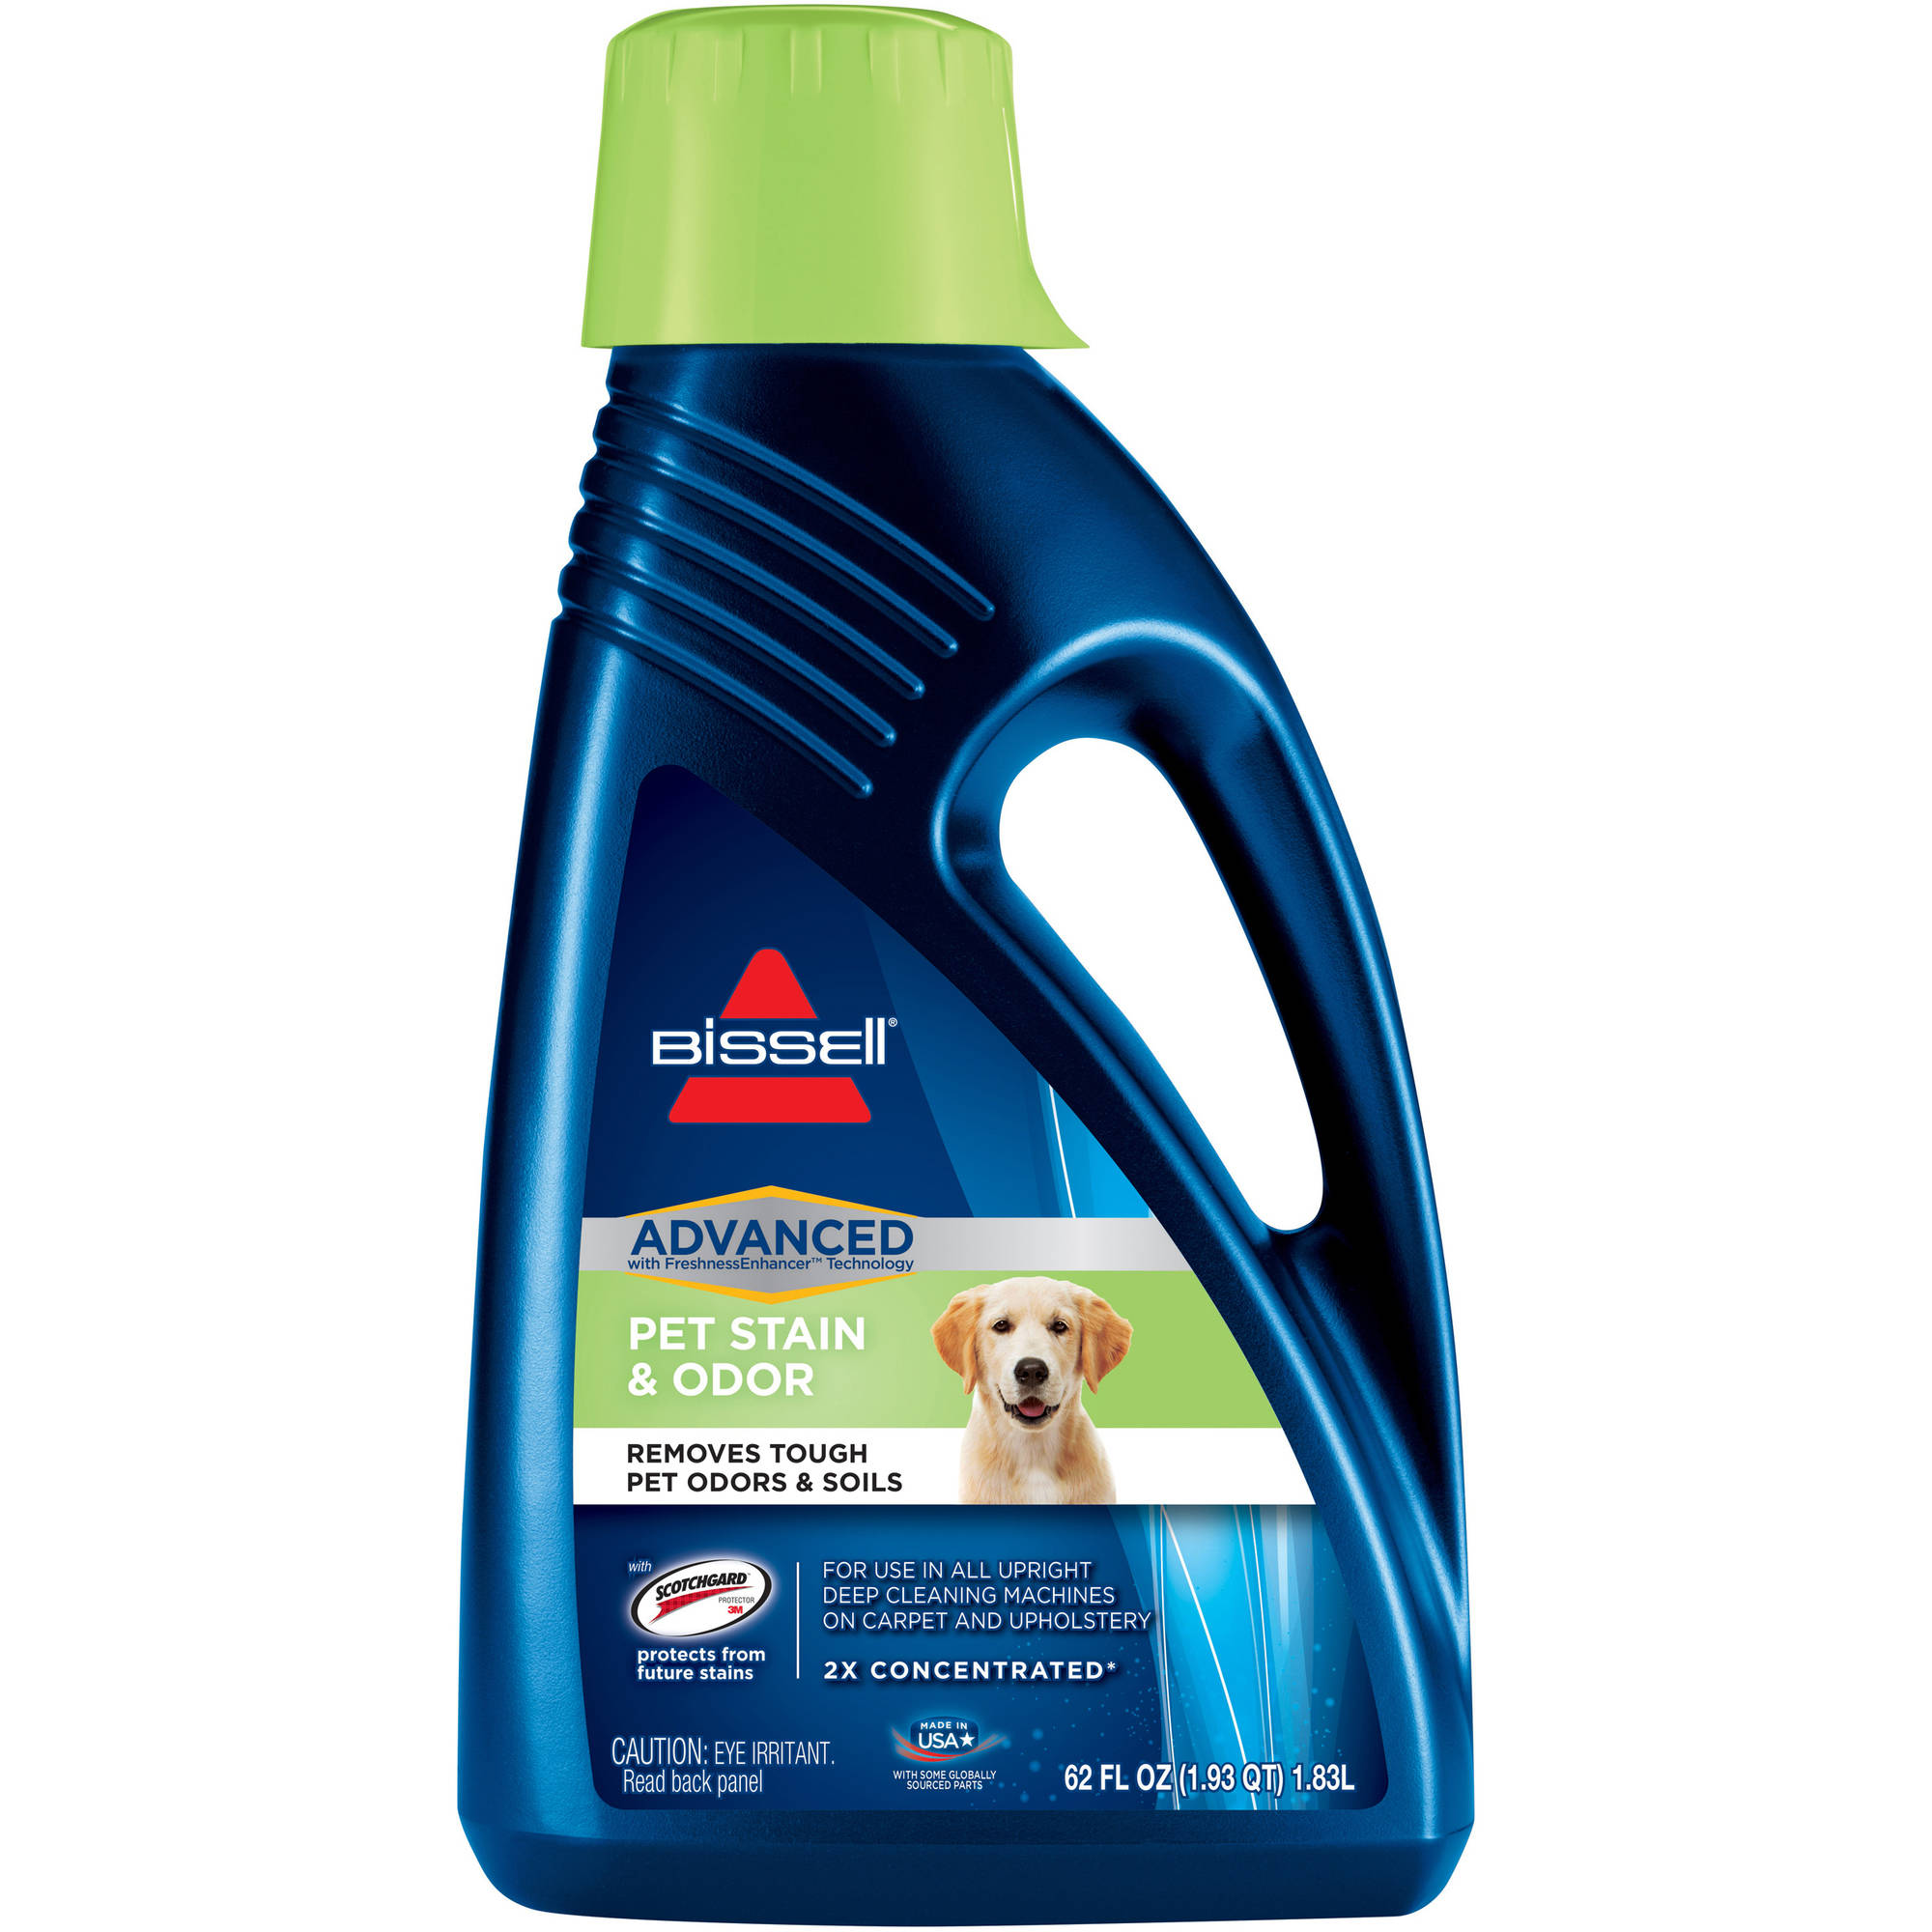 BISSELL 2X Pet Stain and Odor Full Size Carpet Cleaning Formula, 60 oz, 99K52